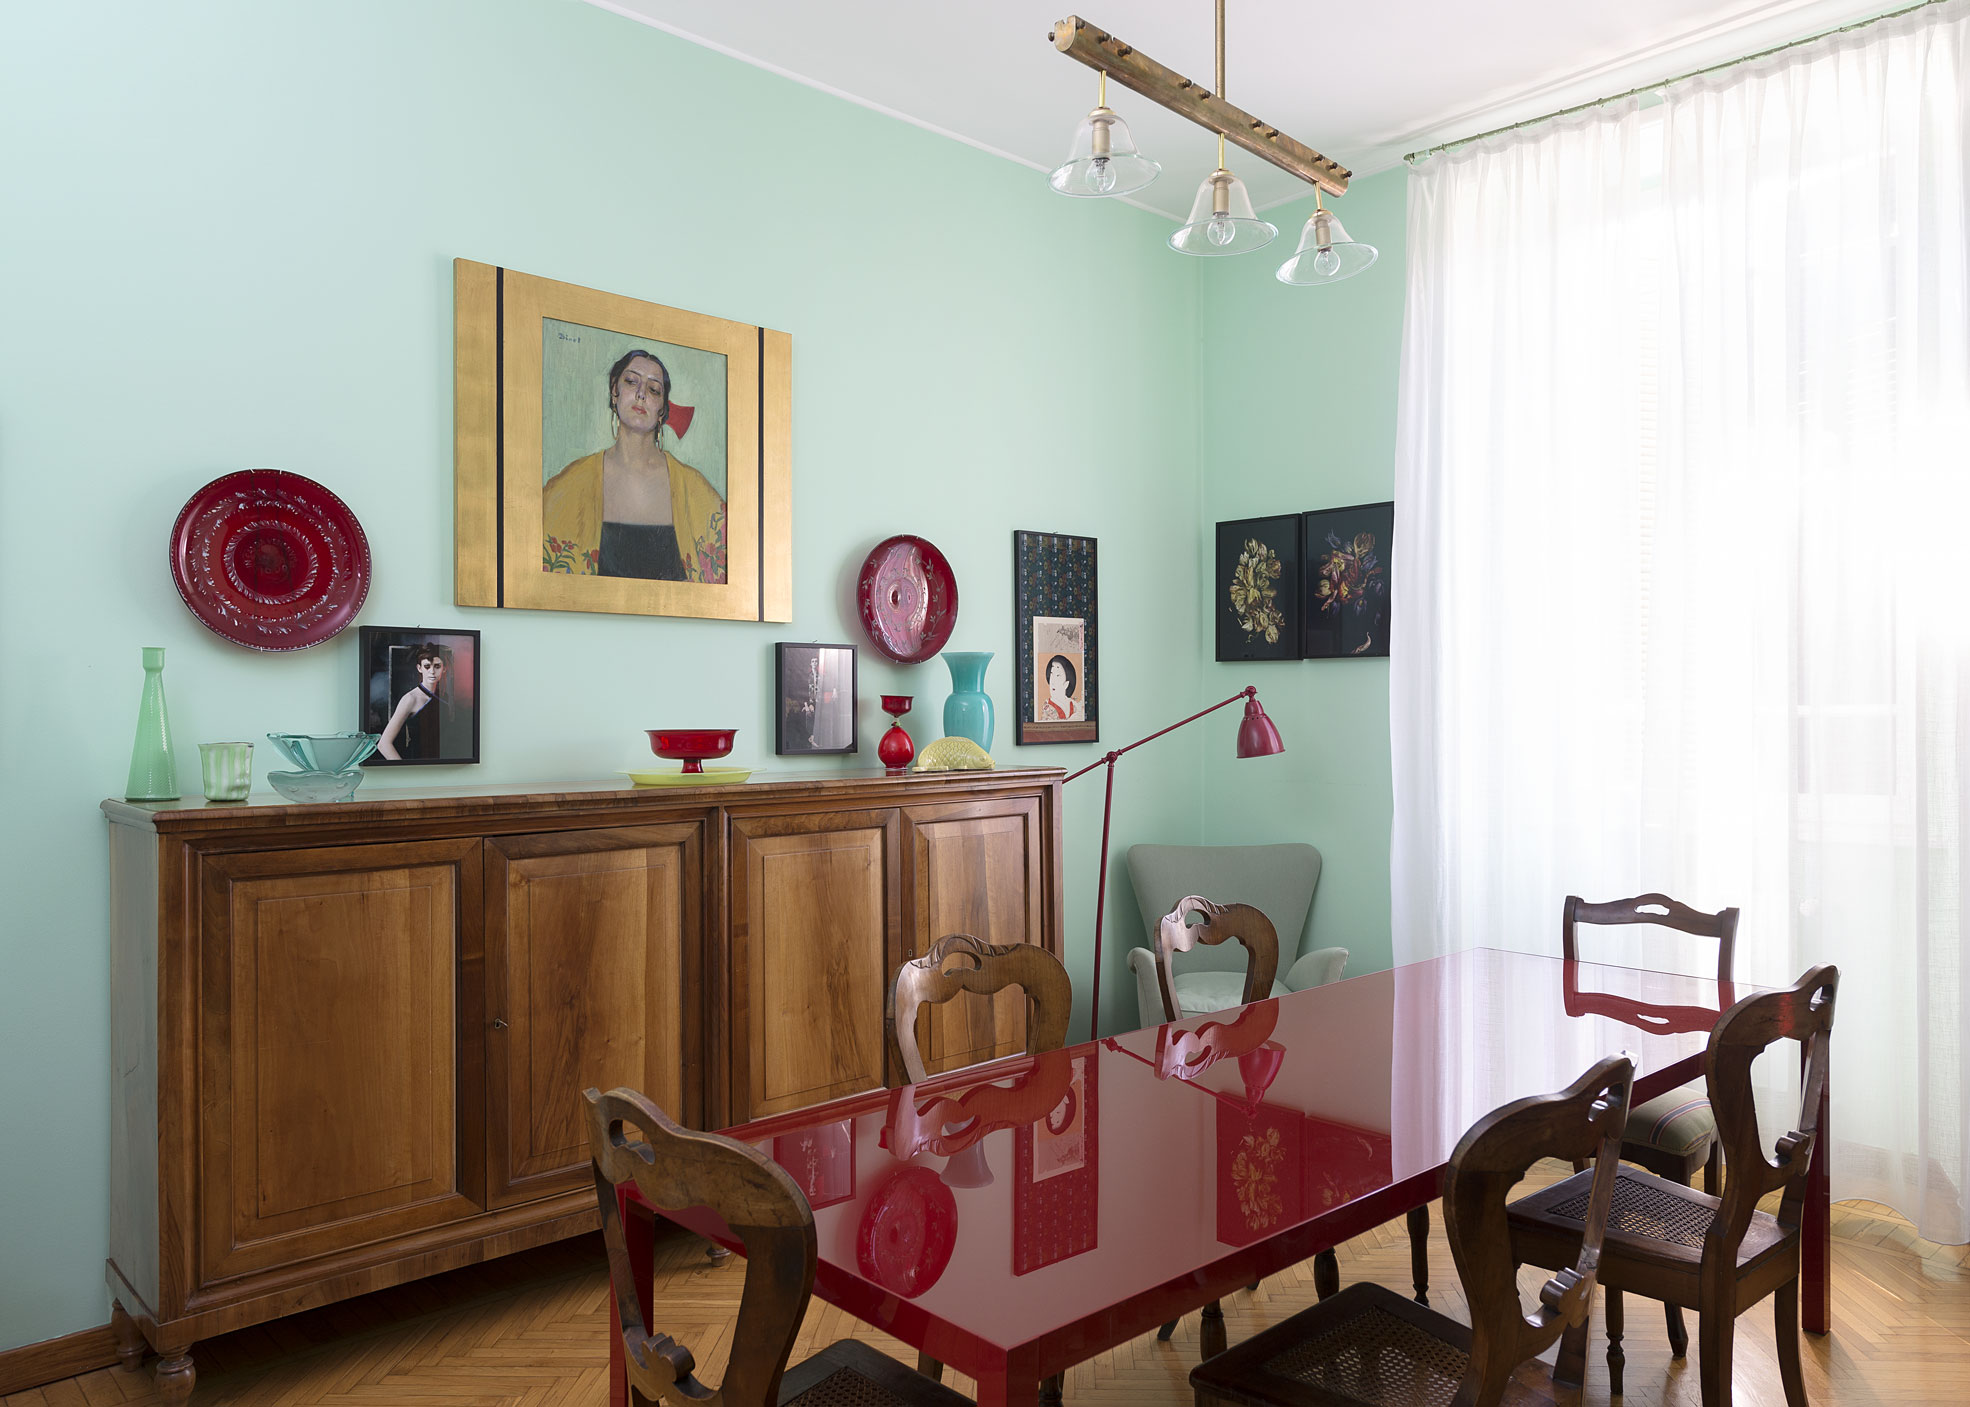 Diningroom of Elena Corner's house Photographer Maria Teresa Furnari